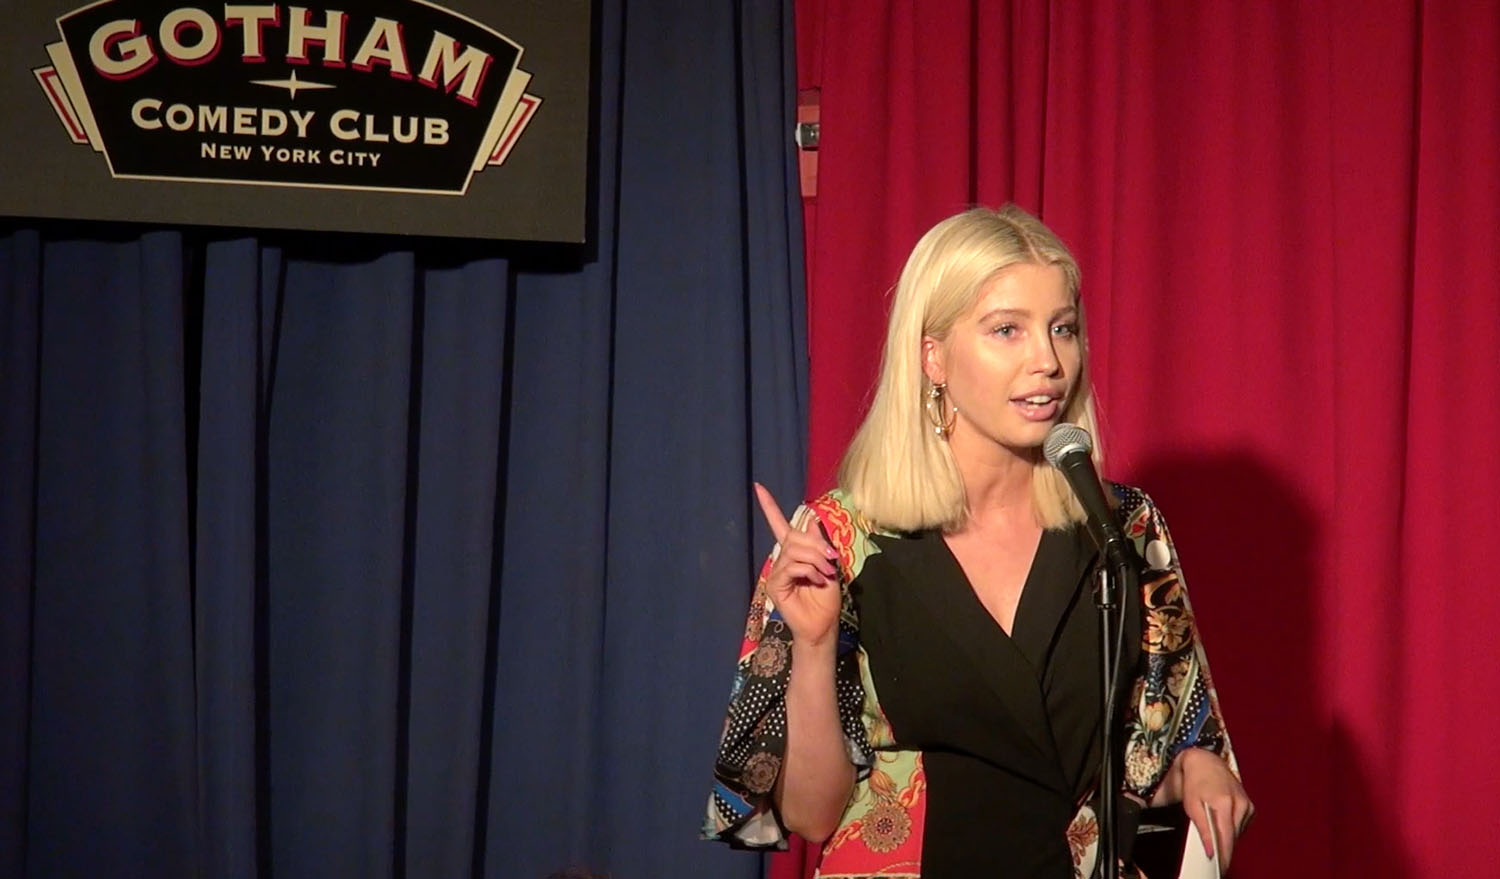 arielle raycene at gotham comedy club new york city